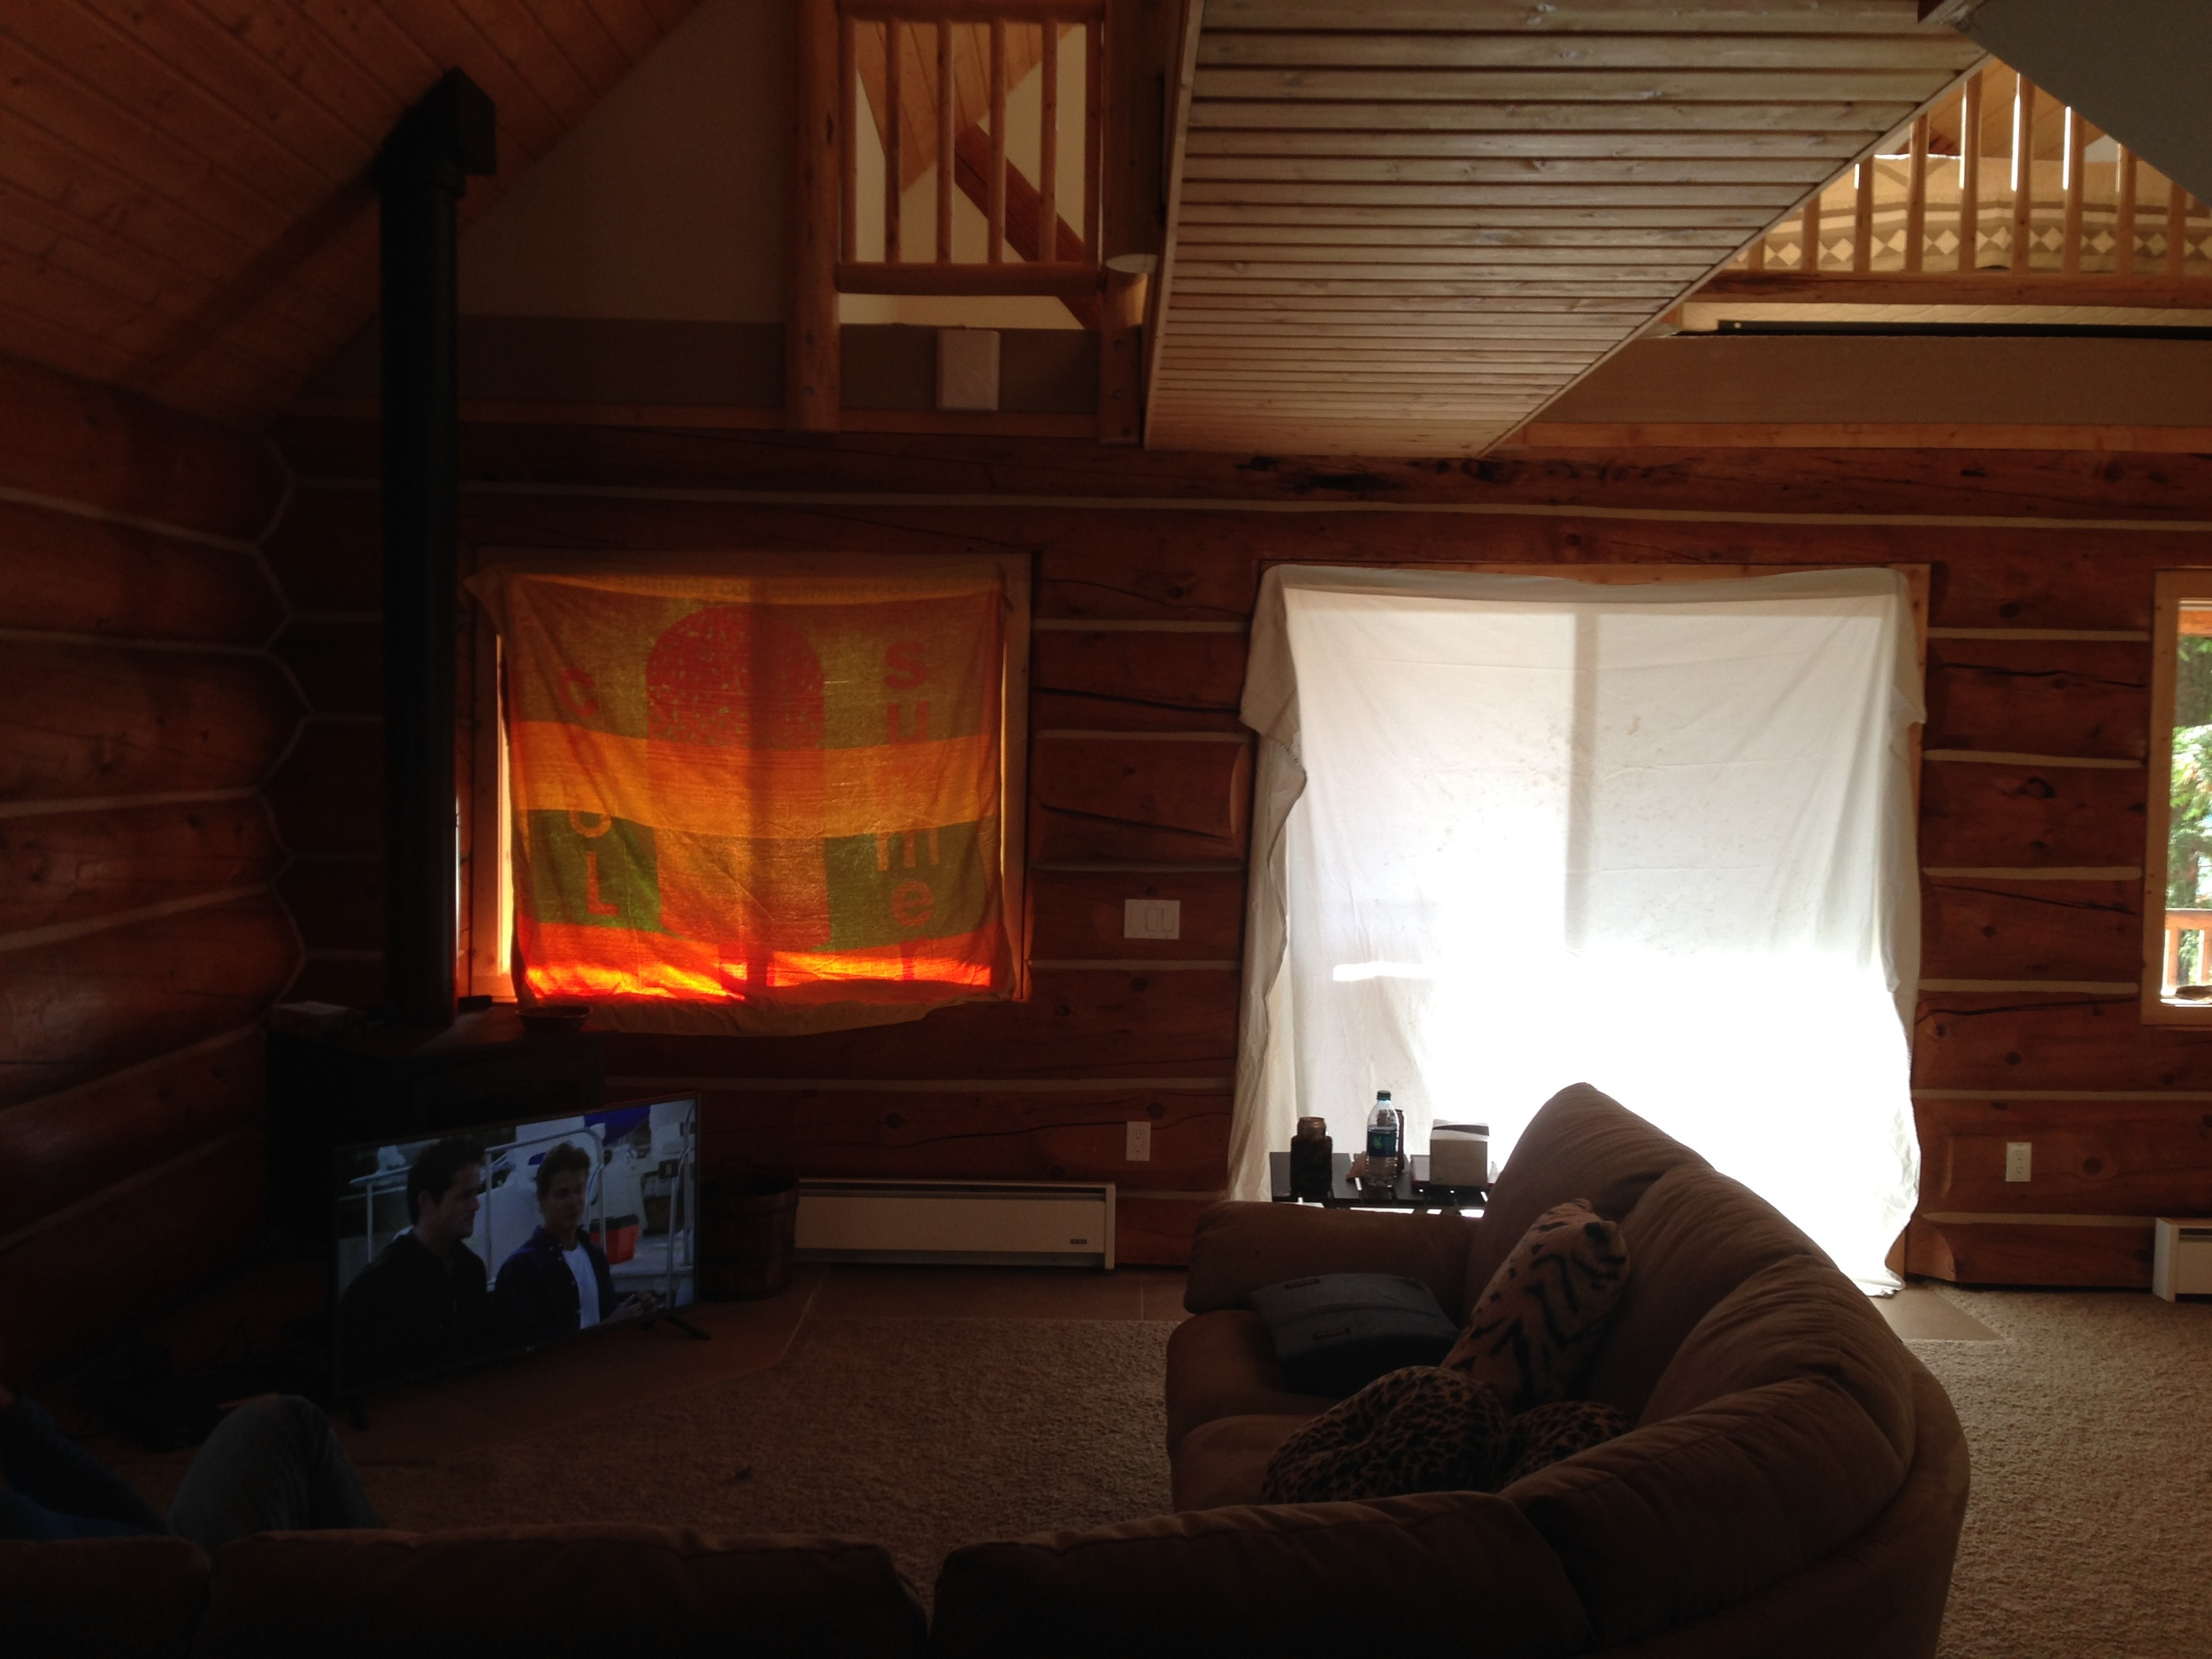 The sun comes in so bright in the evenings that we can't see the TV. Ordering some window coverings, but for now a sheet and beach towel will work. #Redneck